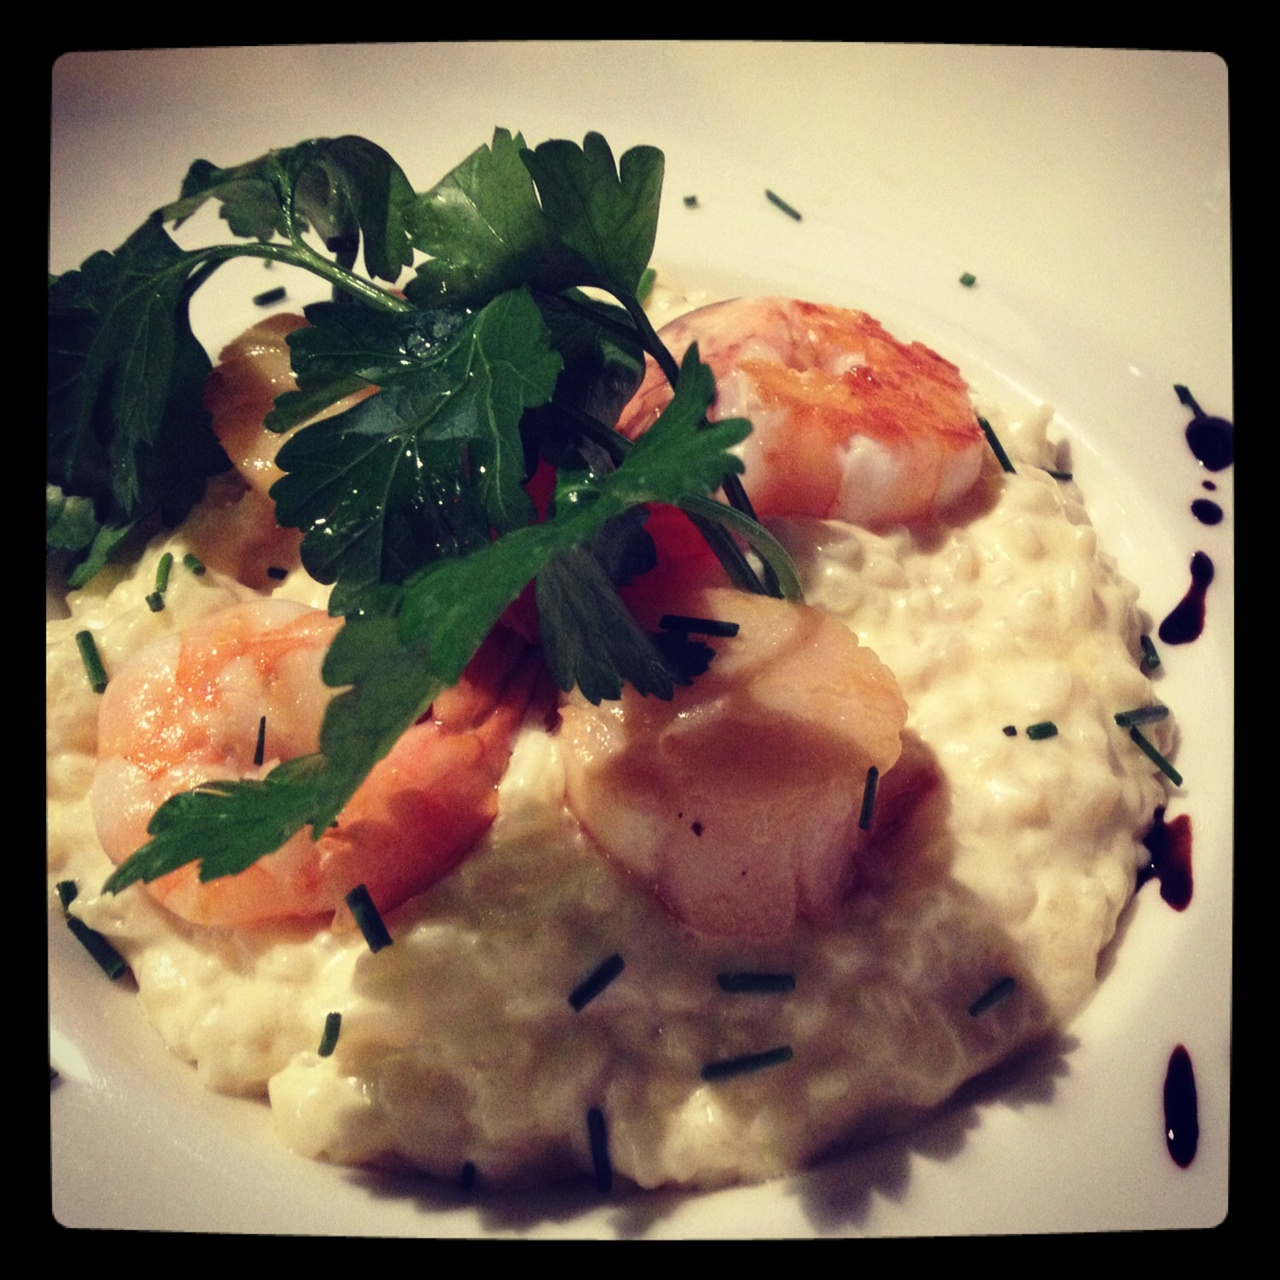 Paris Food, Shrimp and Cheese Risotto at Le Gabin